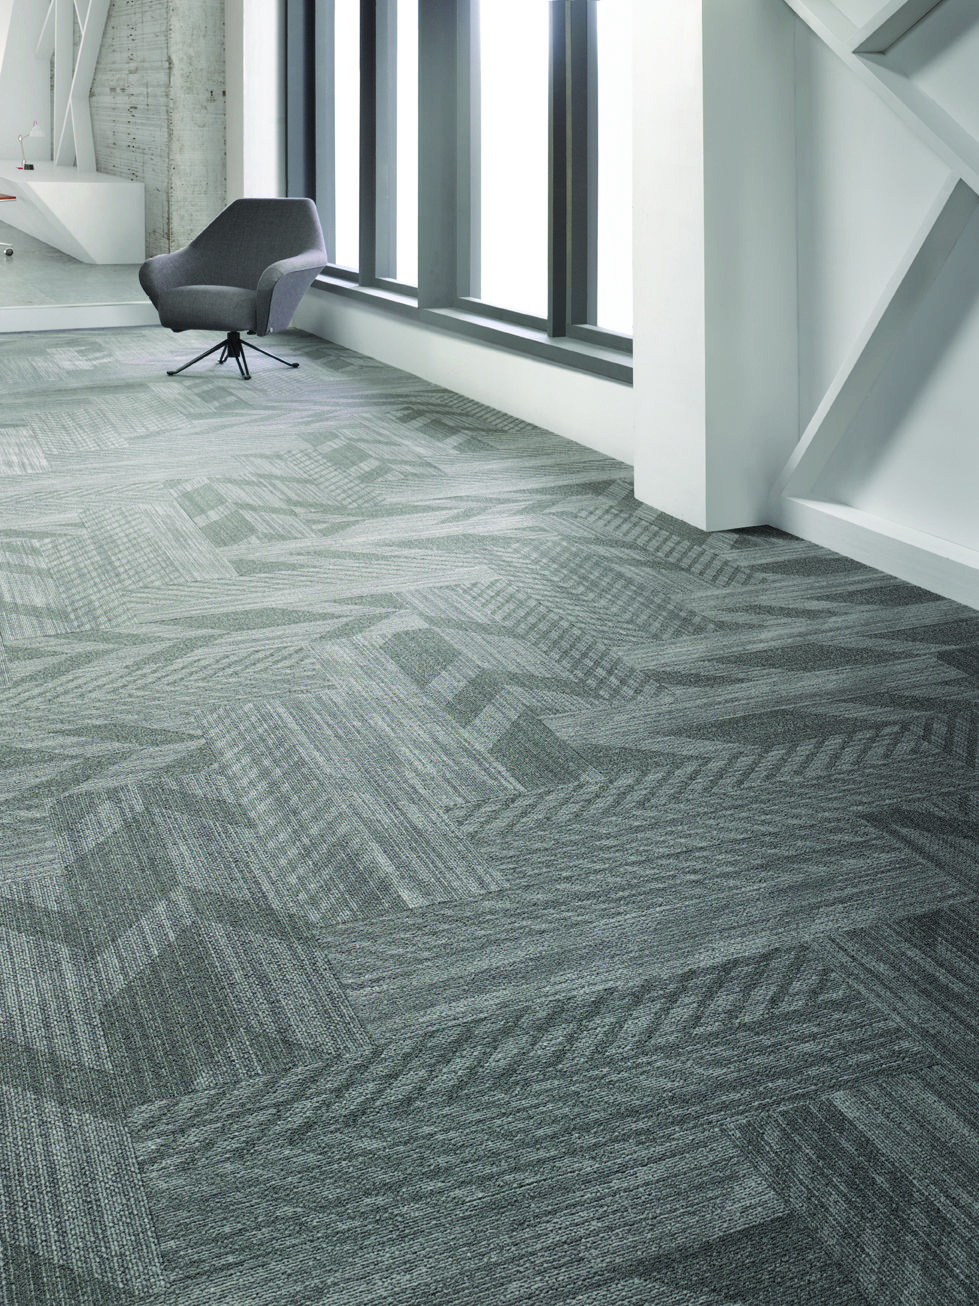 Zip it tile 12by36 lees commercial modular carpet mohawk group zip it tile 12by36 lees commercial modular carpet mohawk group baanklon Images